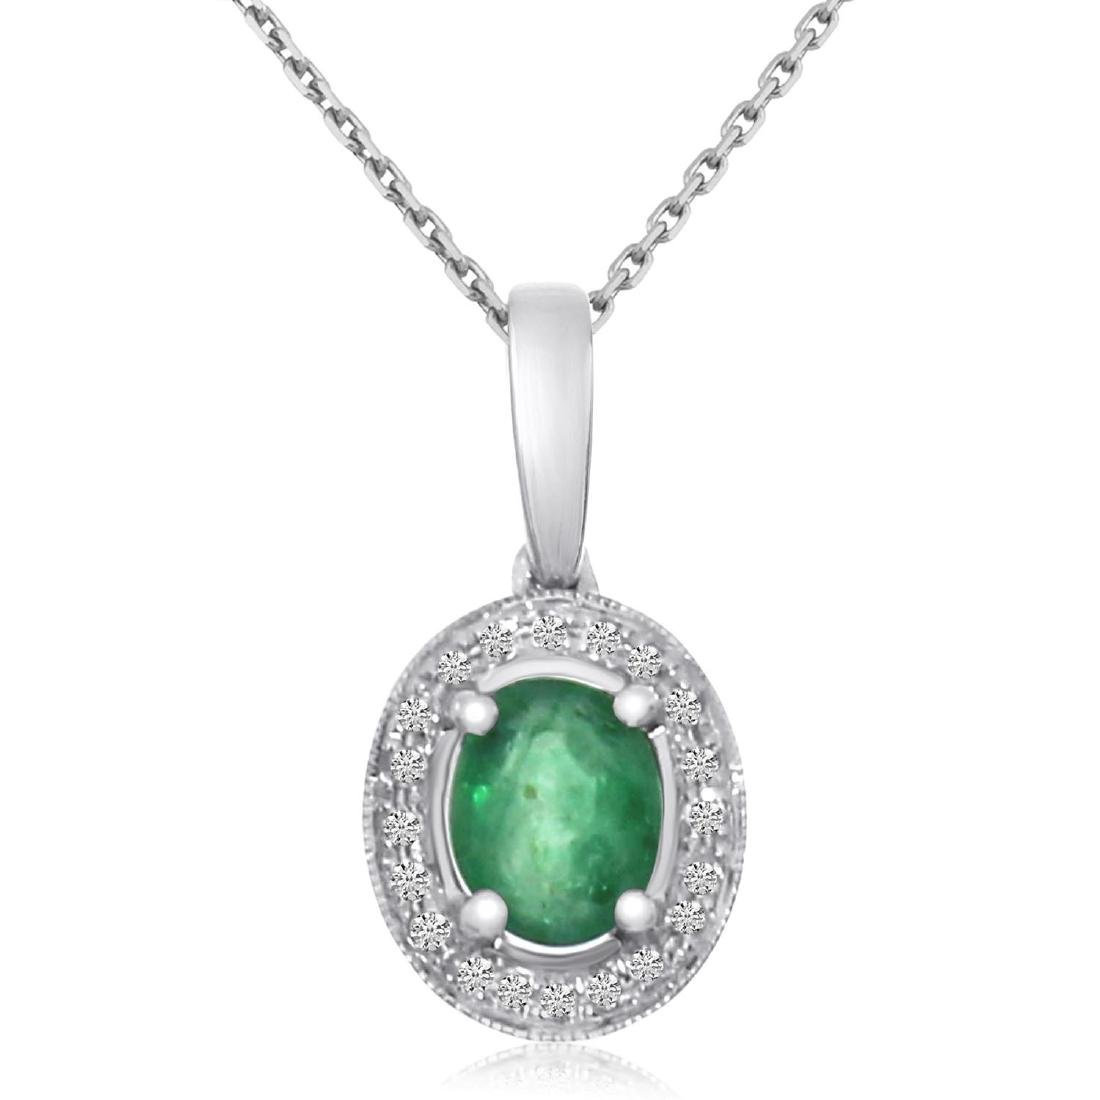 Certified 14k White Gold Oval Emerald and Diamond Penda